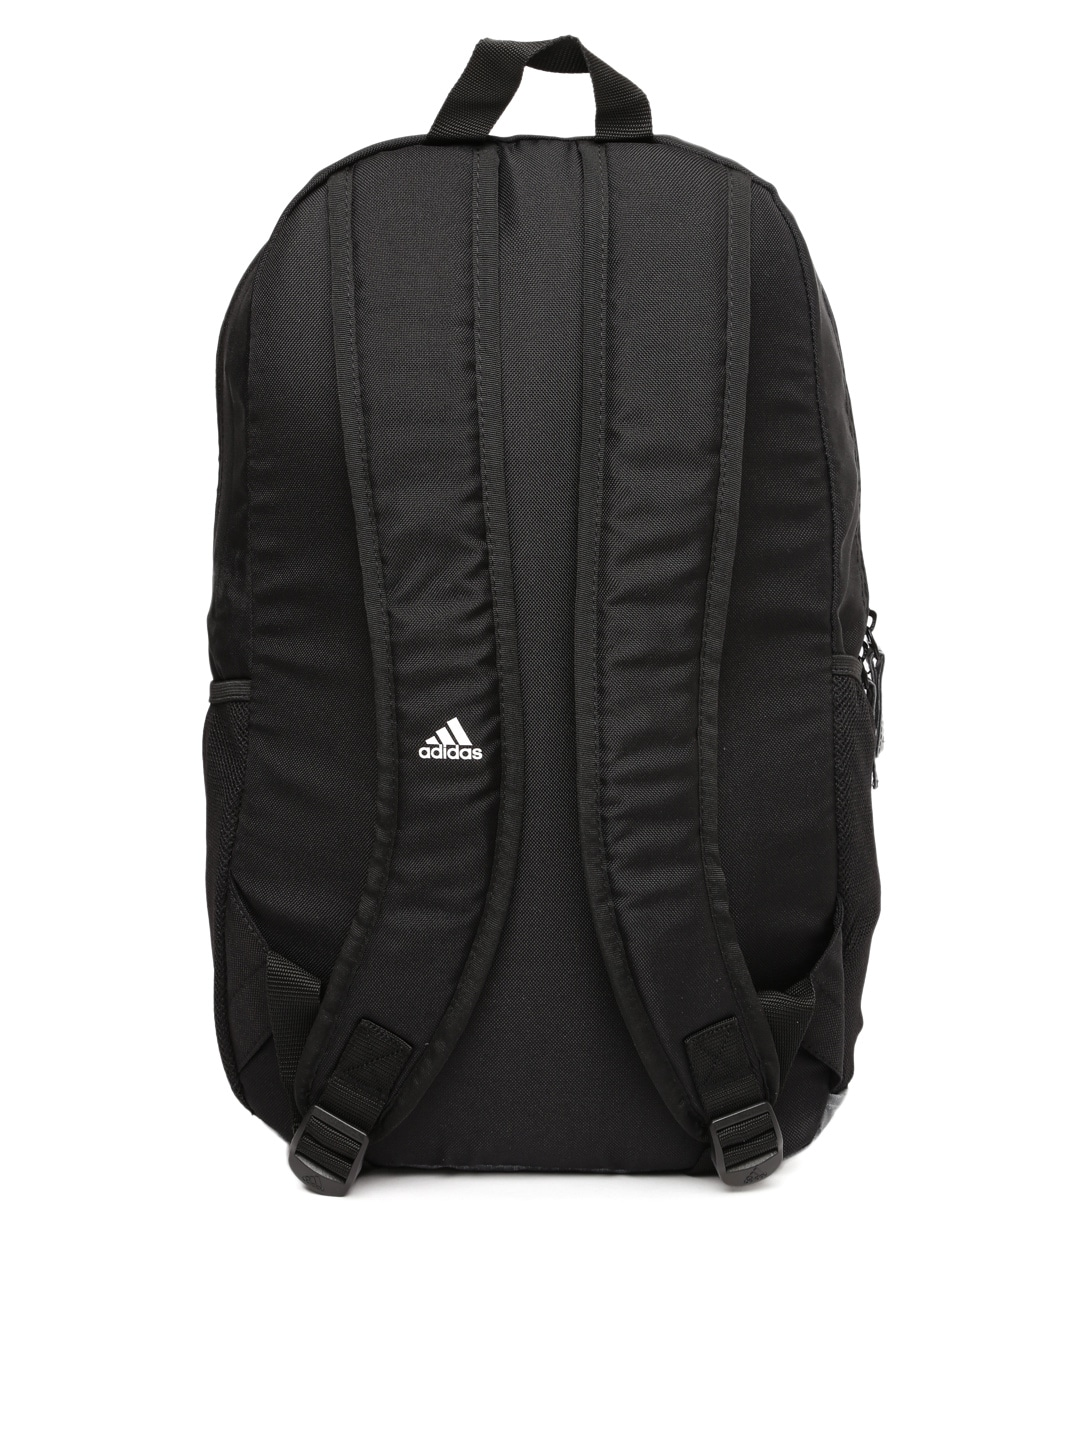 89dab713e154 adidas football bag on sale   OFF55% Discounts